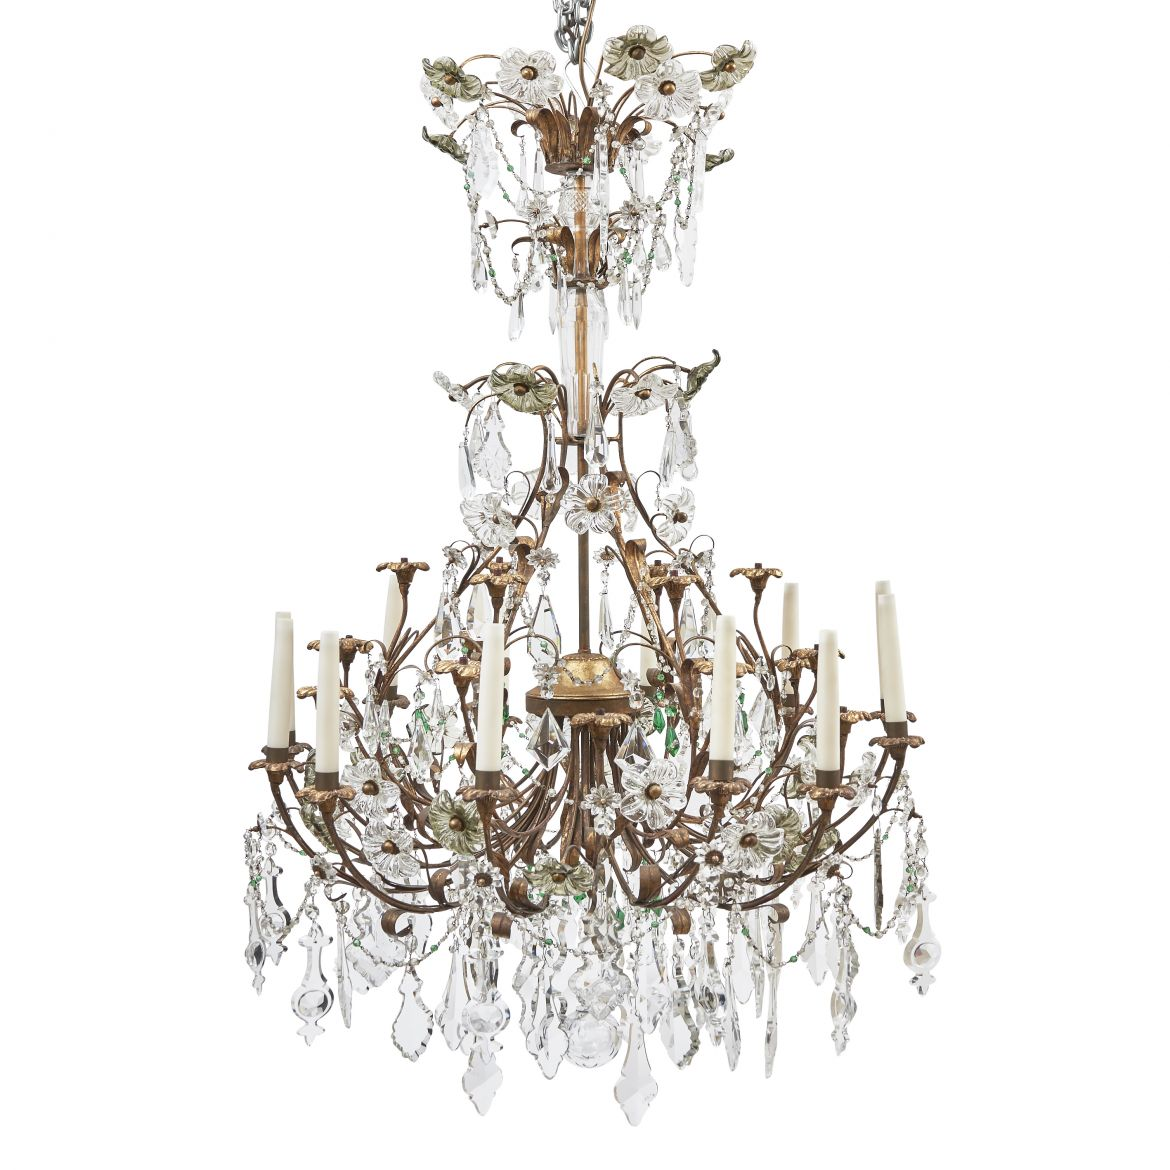 Italian Chandelier With Crystal Drops